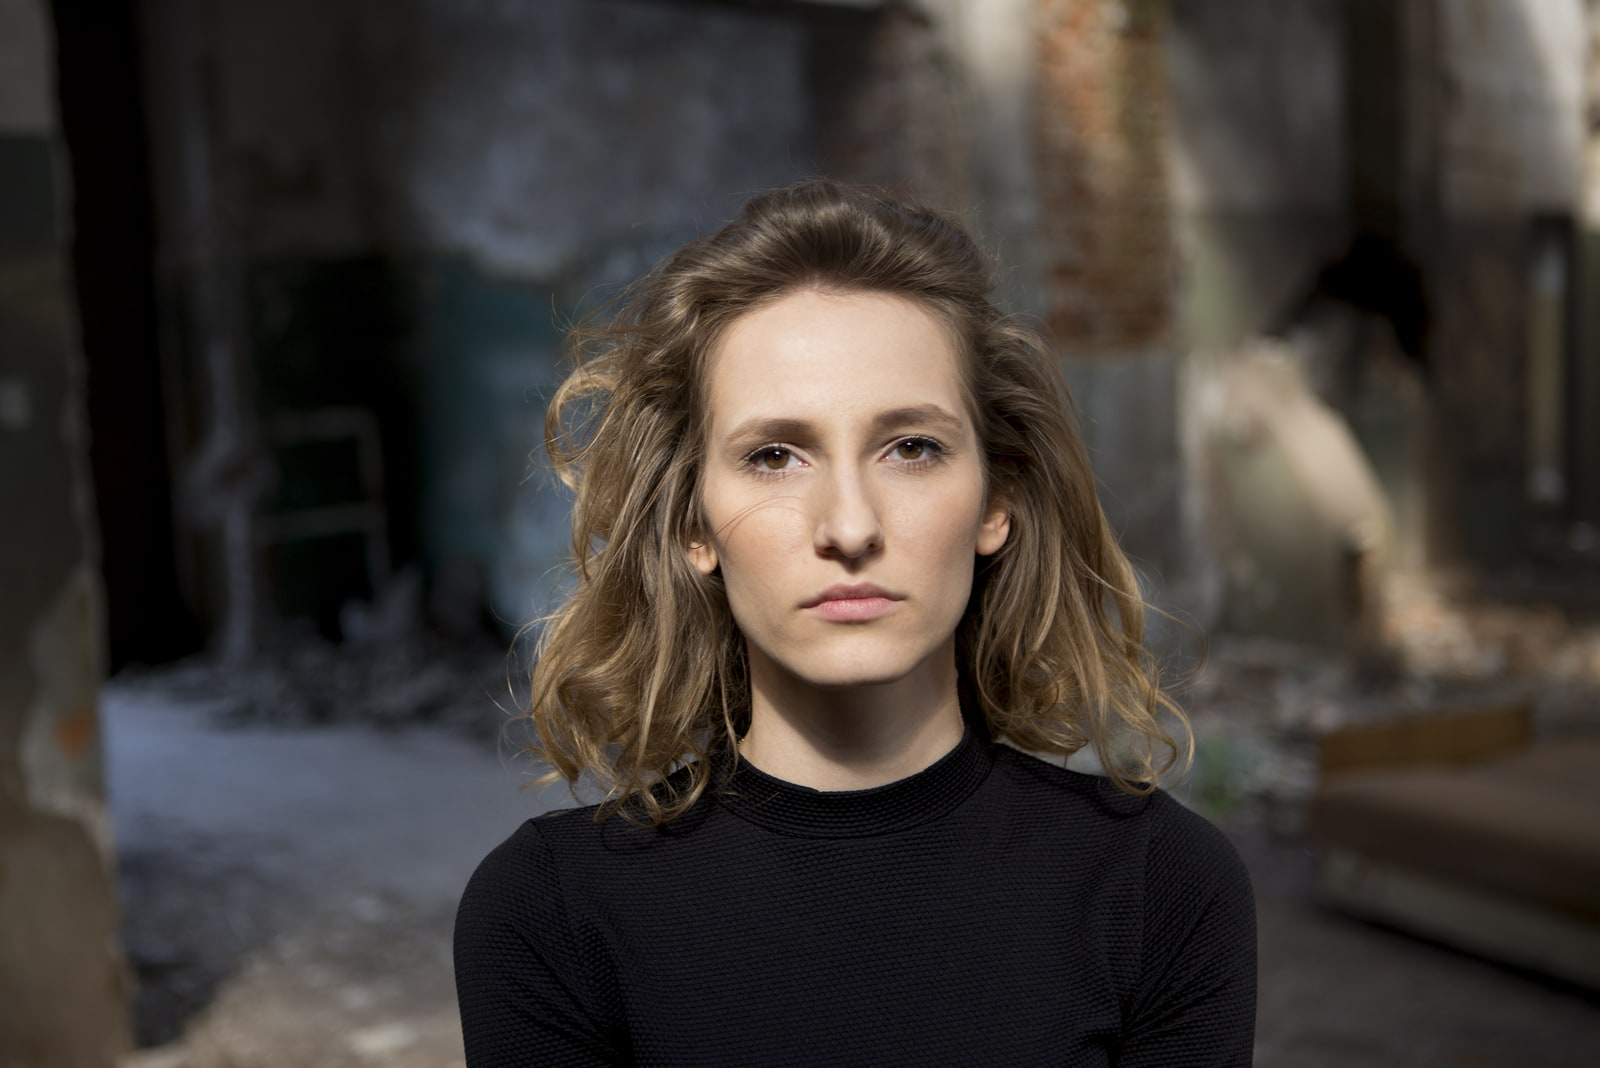 woman with a serious expression on her face